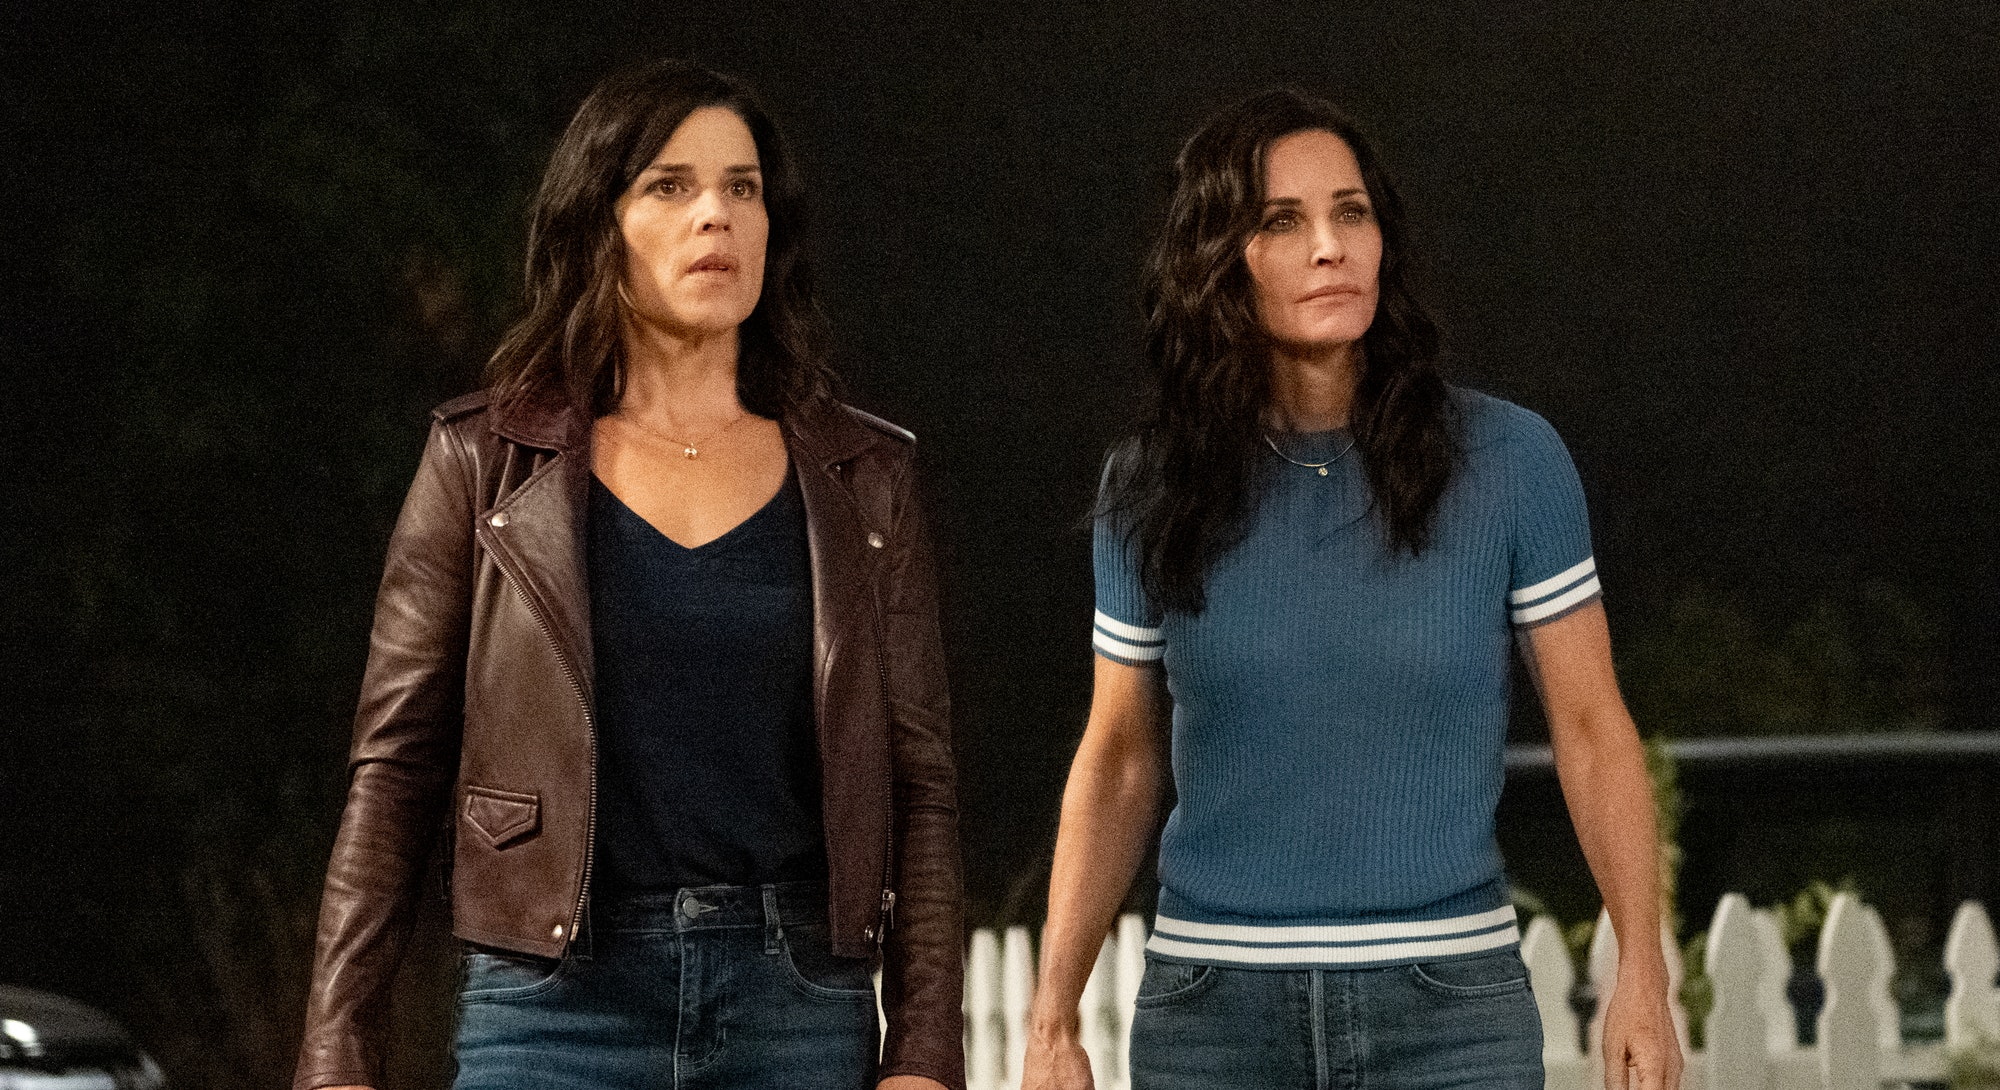 screenshot of Neve Campbell and Courteney Cox in Scream trailer